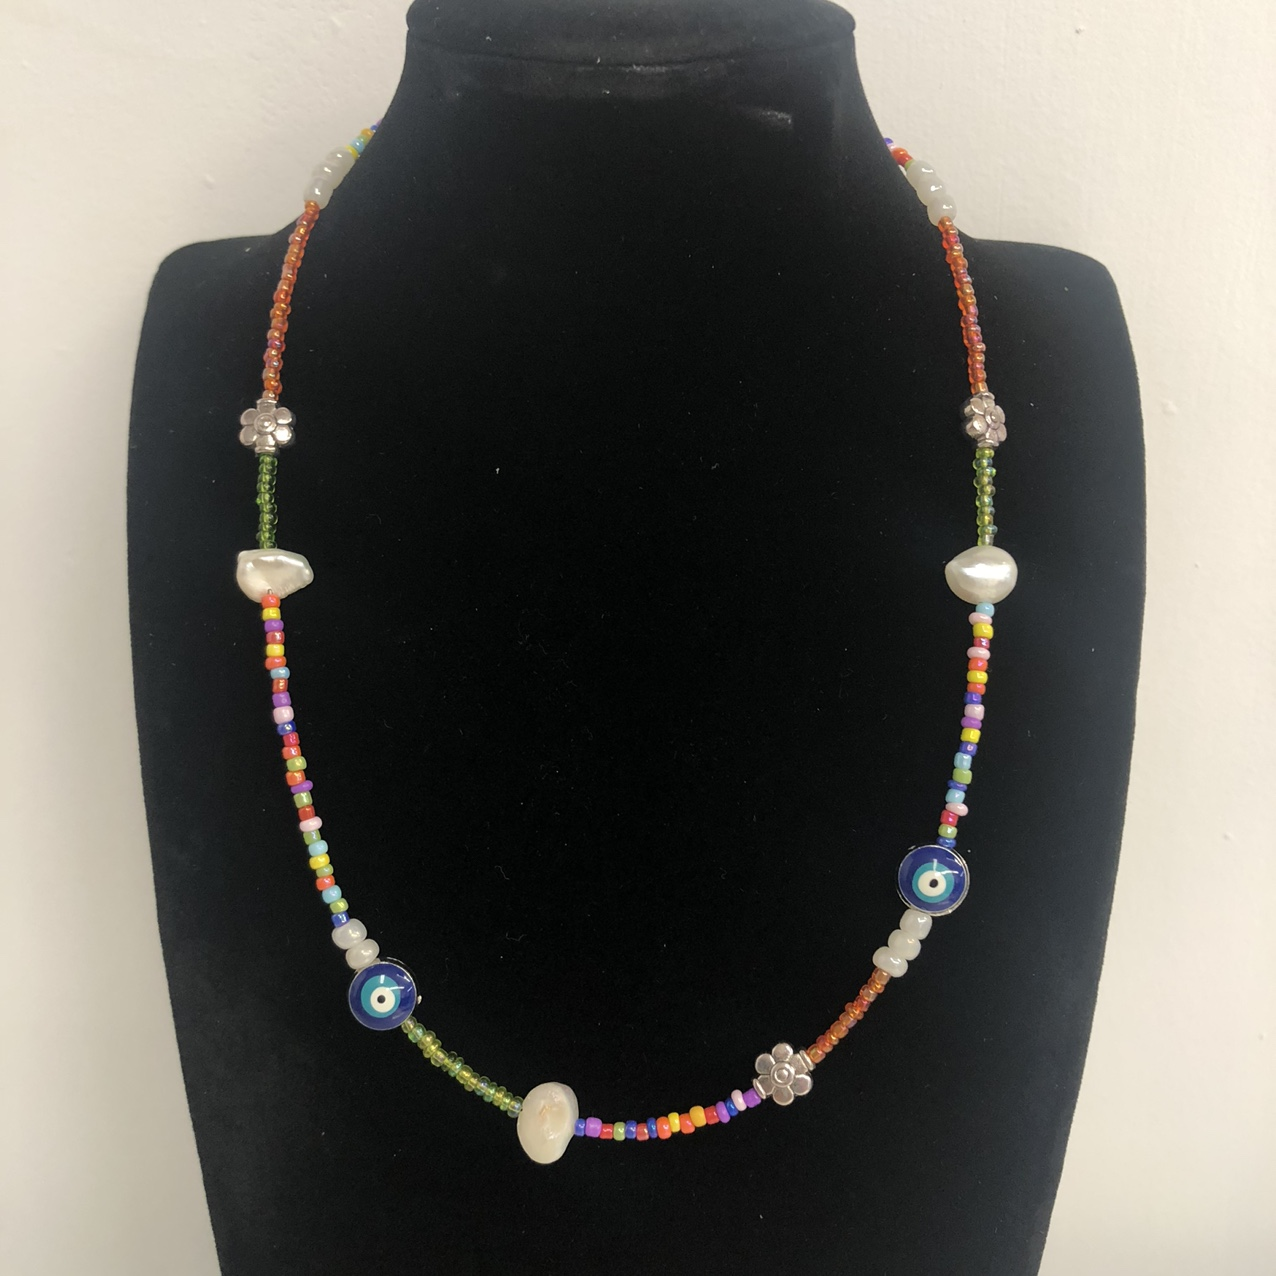 Product Image 1 - Seed Bead Princess Length Necklace